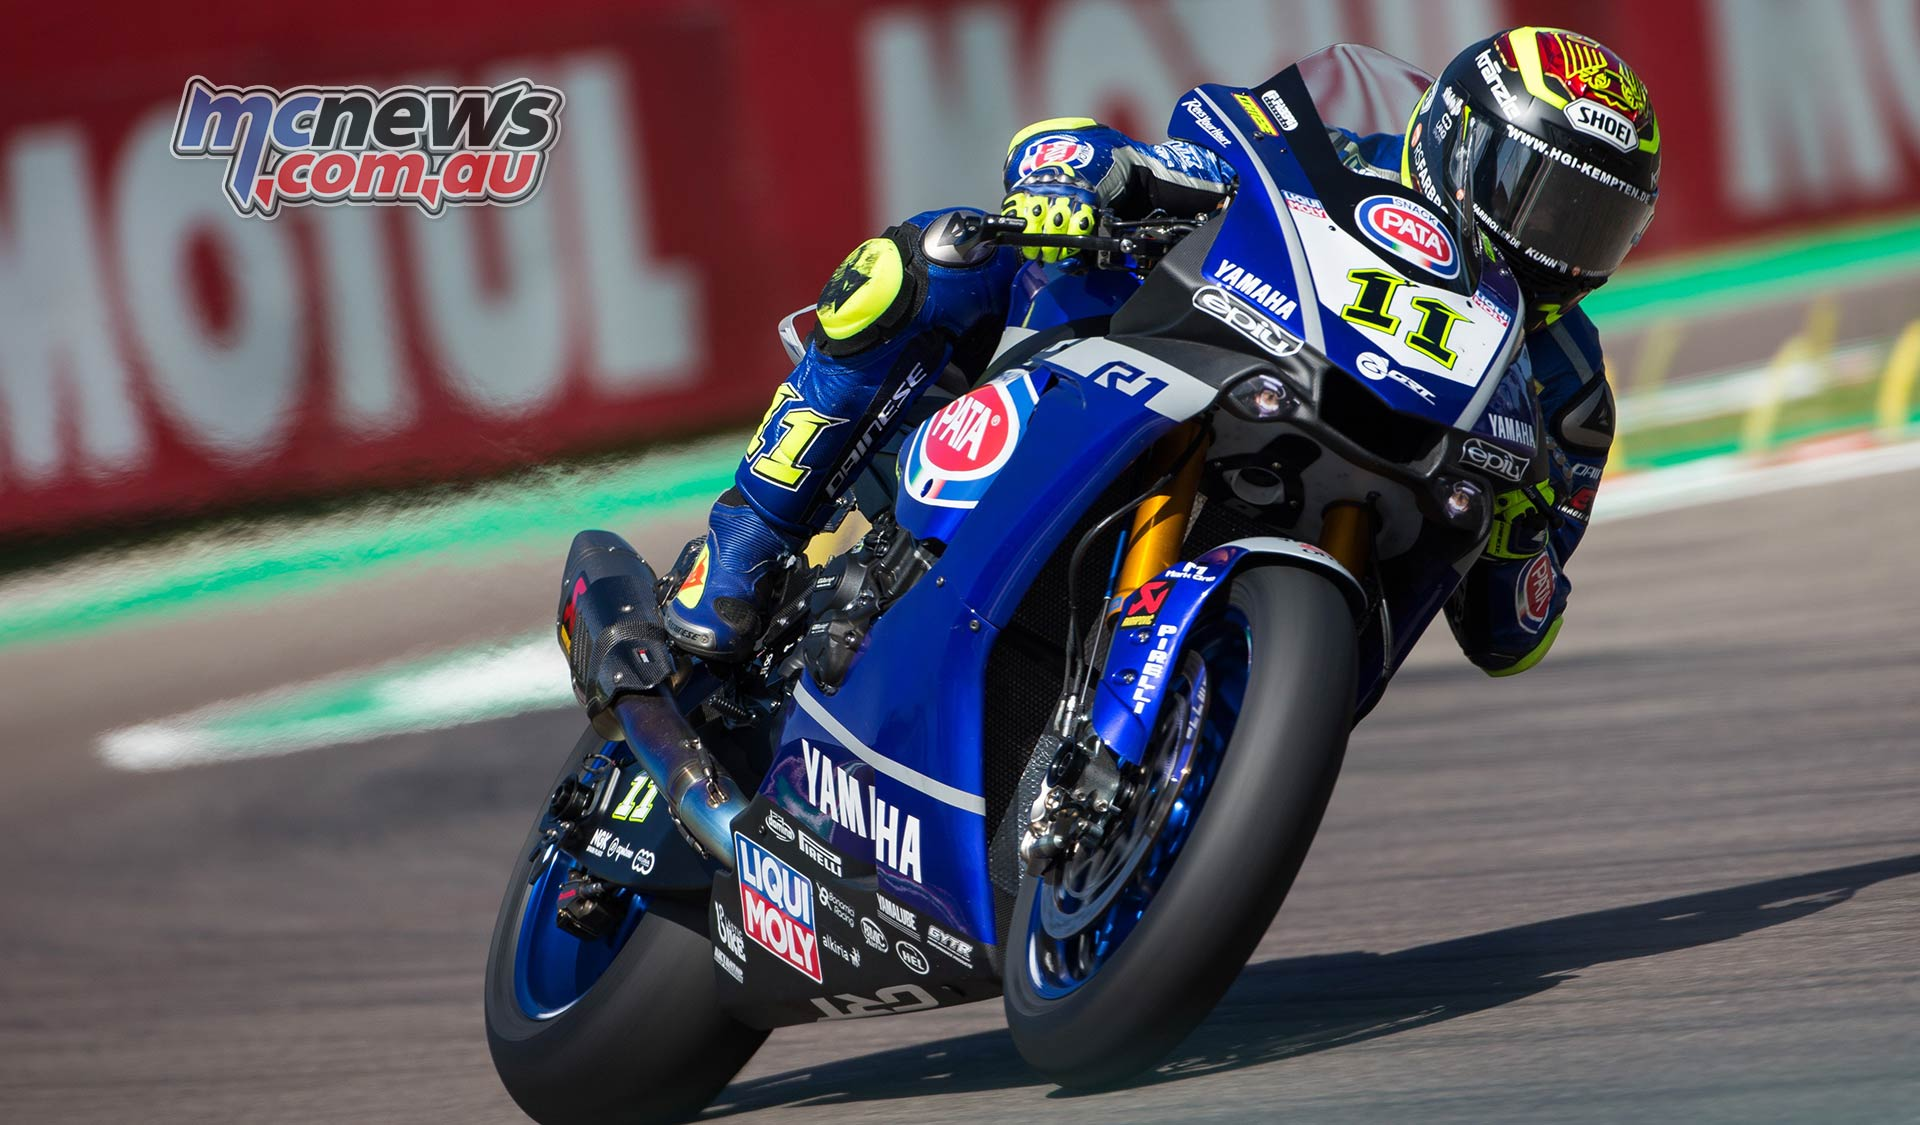 WSBK Rnd Imola Friday Cortese